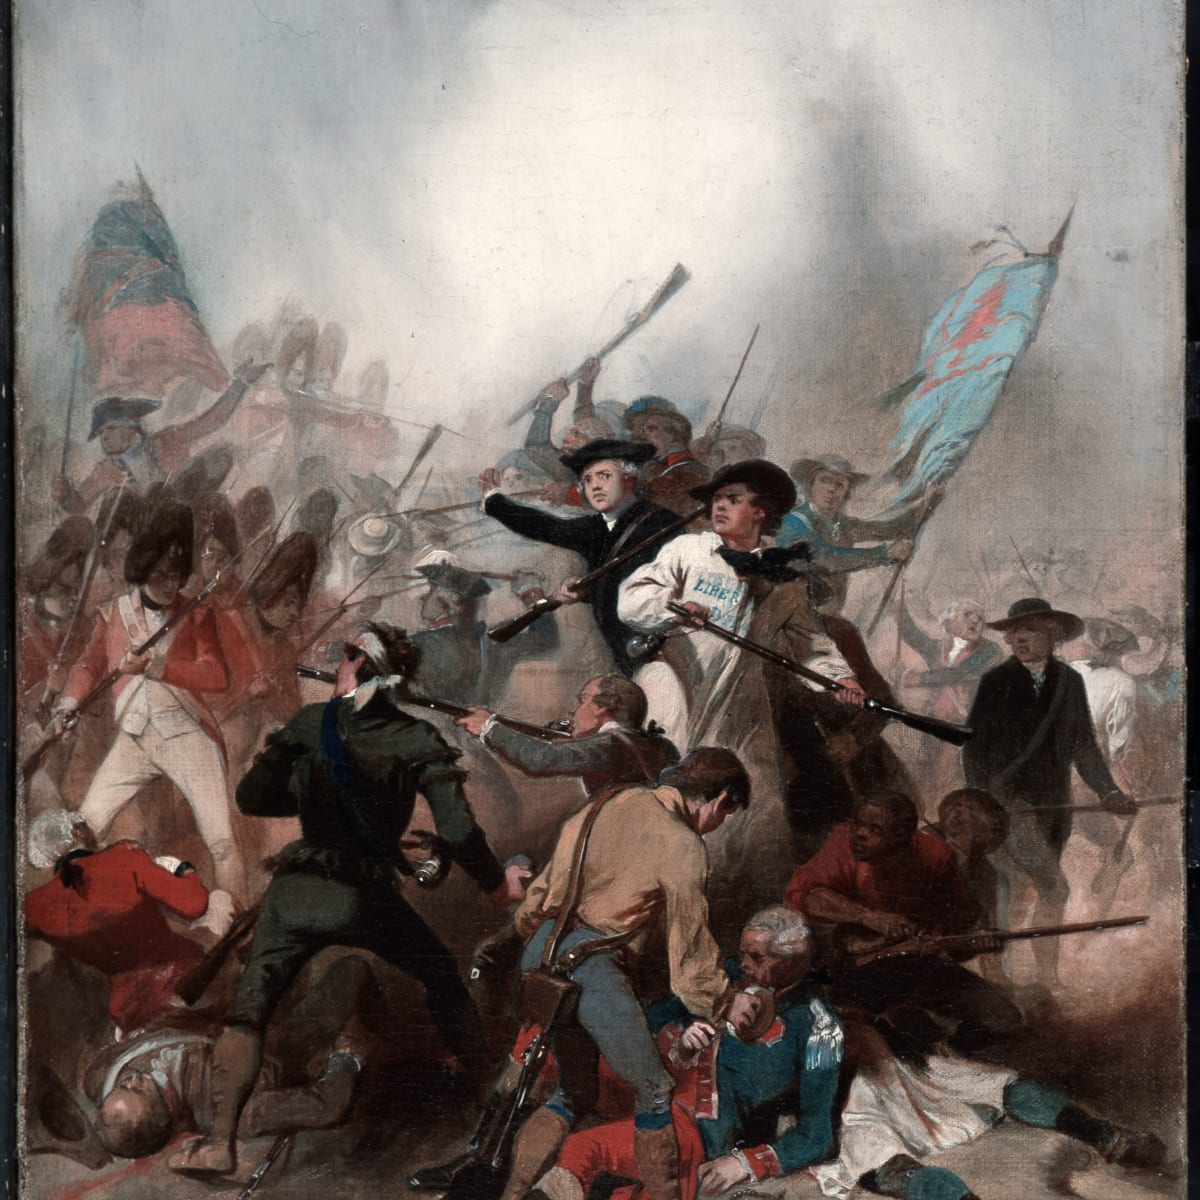 Battle of Bunker Hill - Facts, Definition & Dates - HISTORY